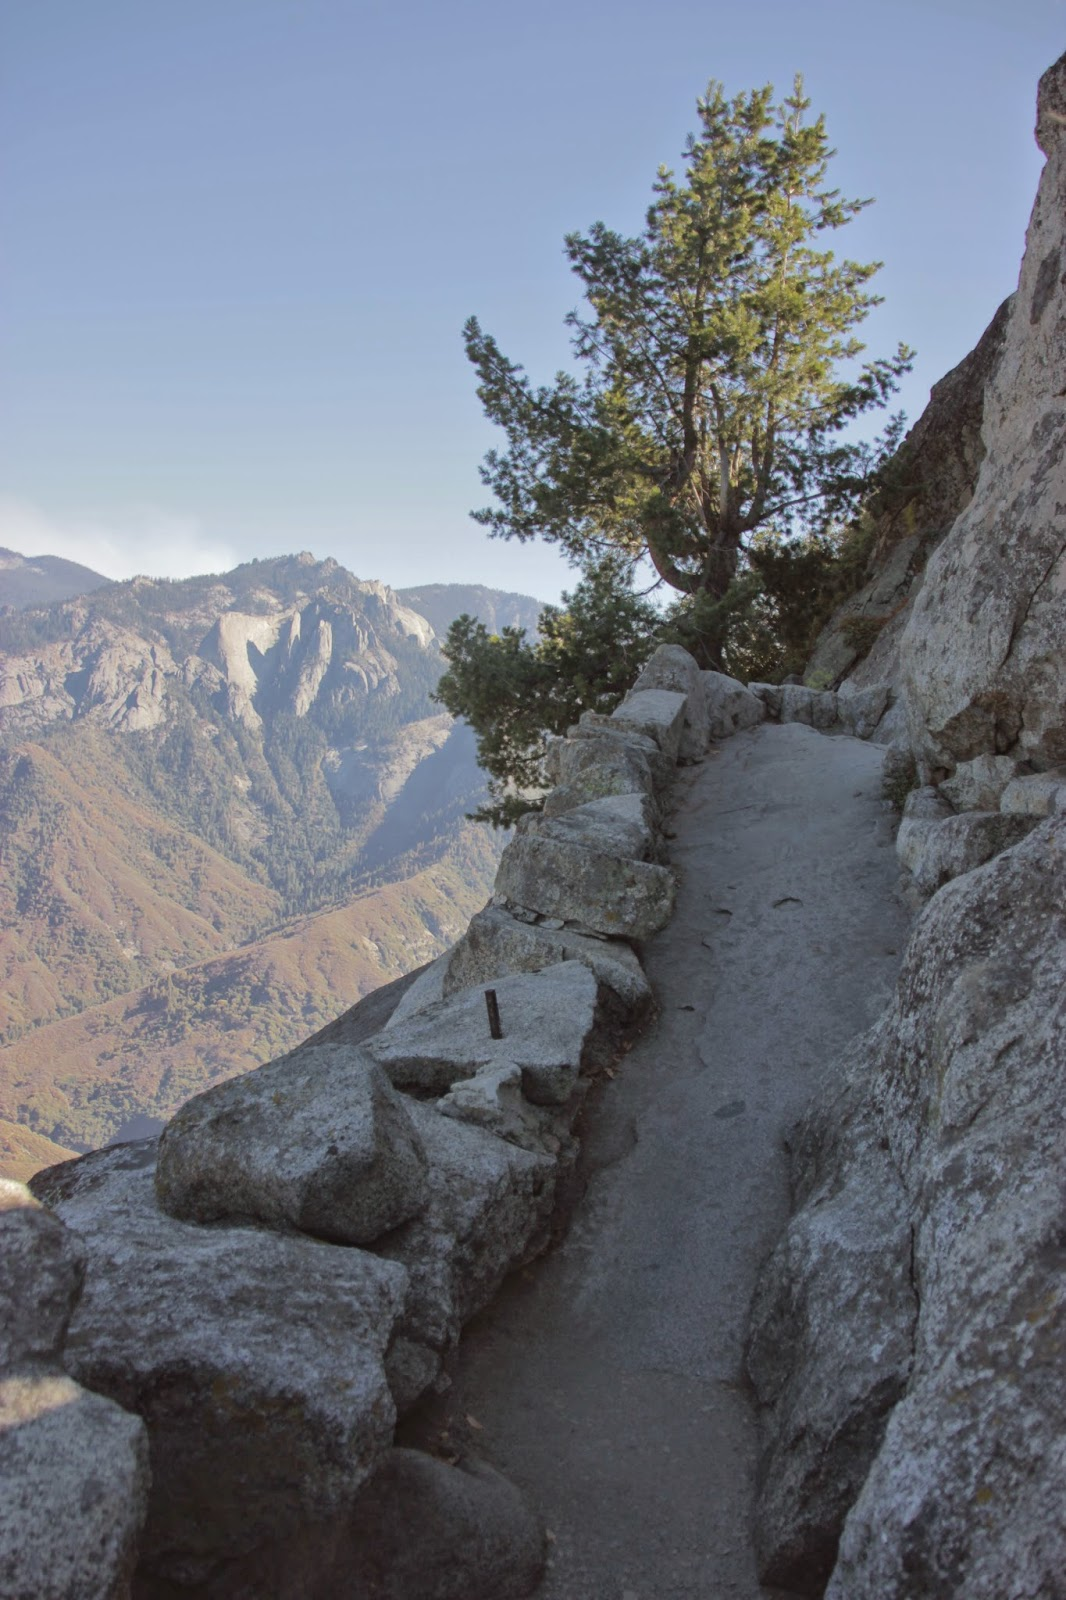 Path up to Moro Rock, Sequoia National Park